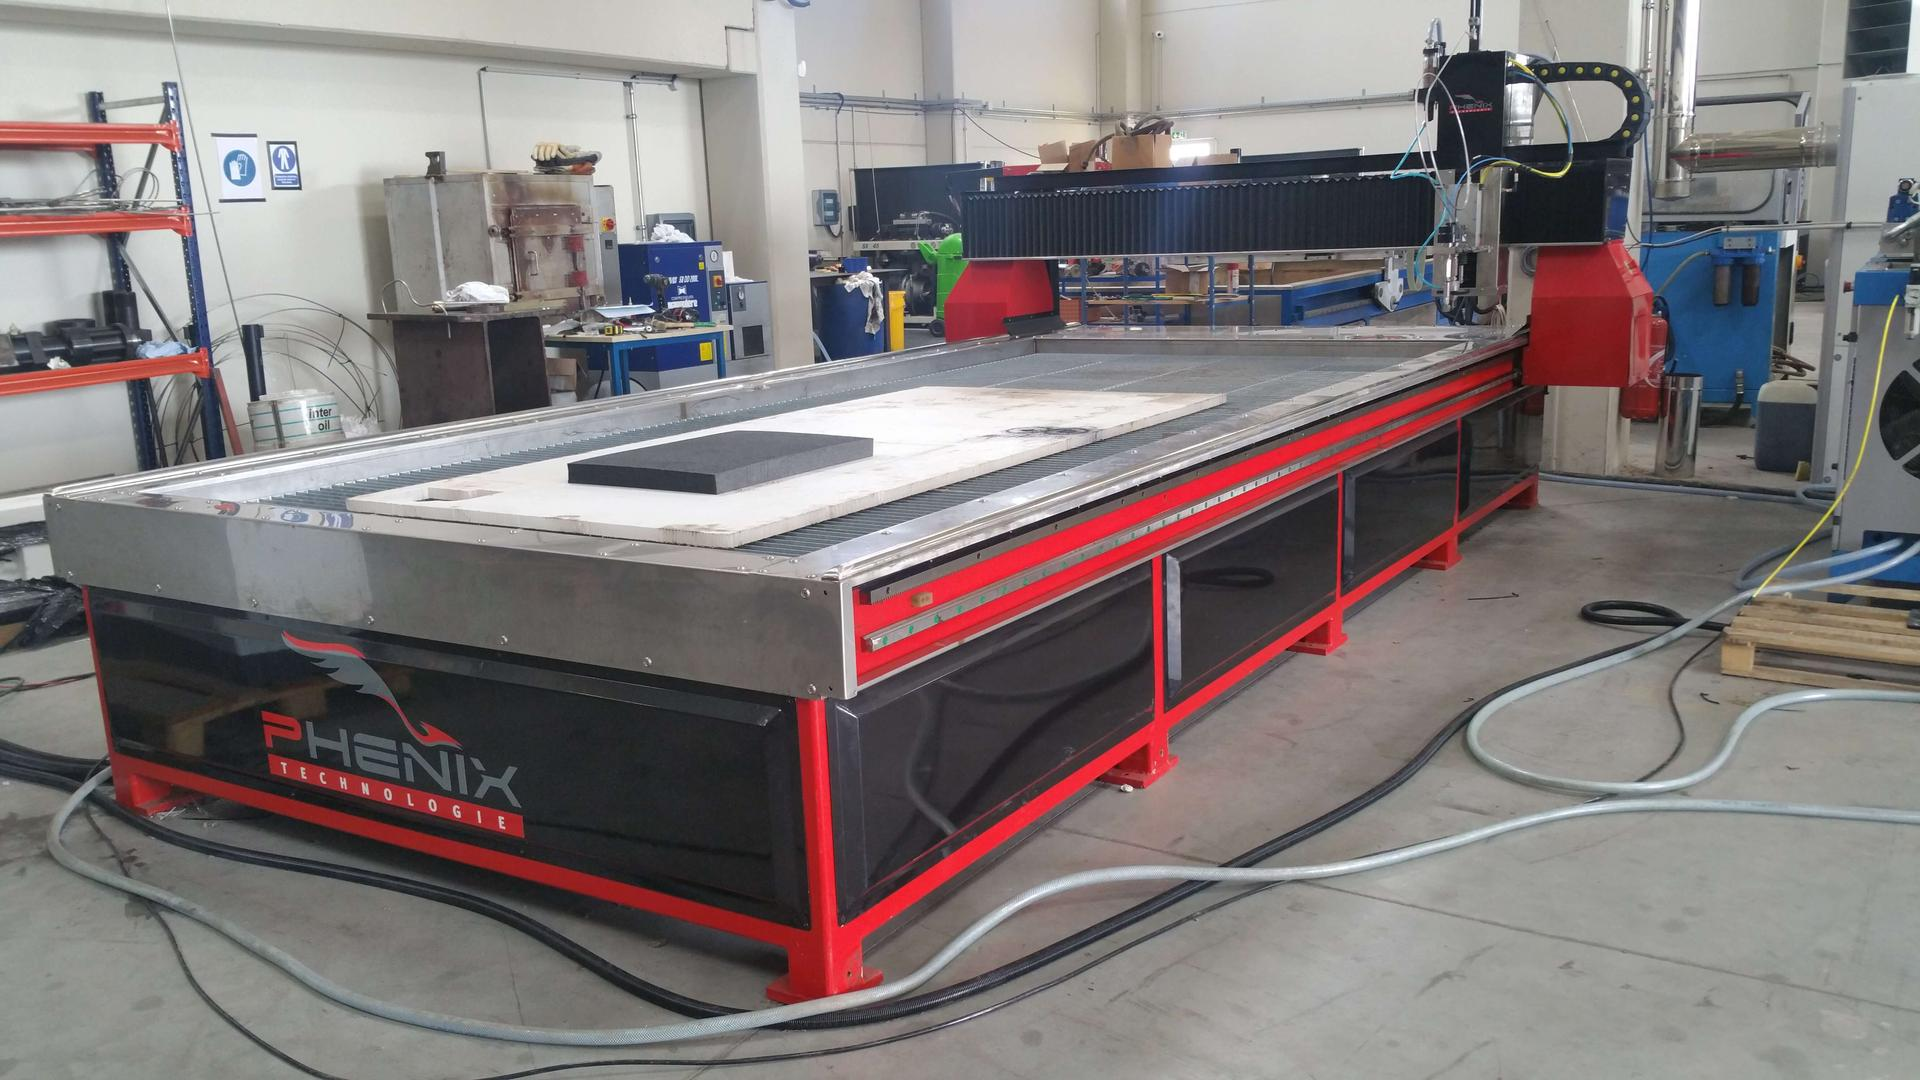 MDX7 - MD-X waterjet cutting machine